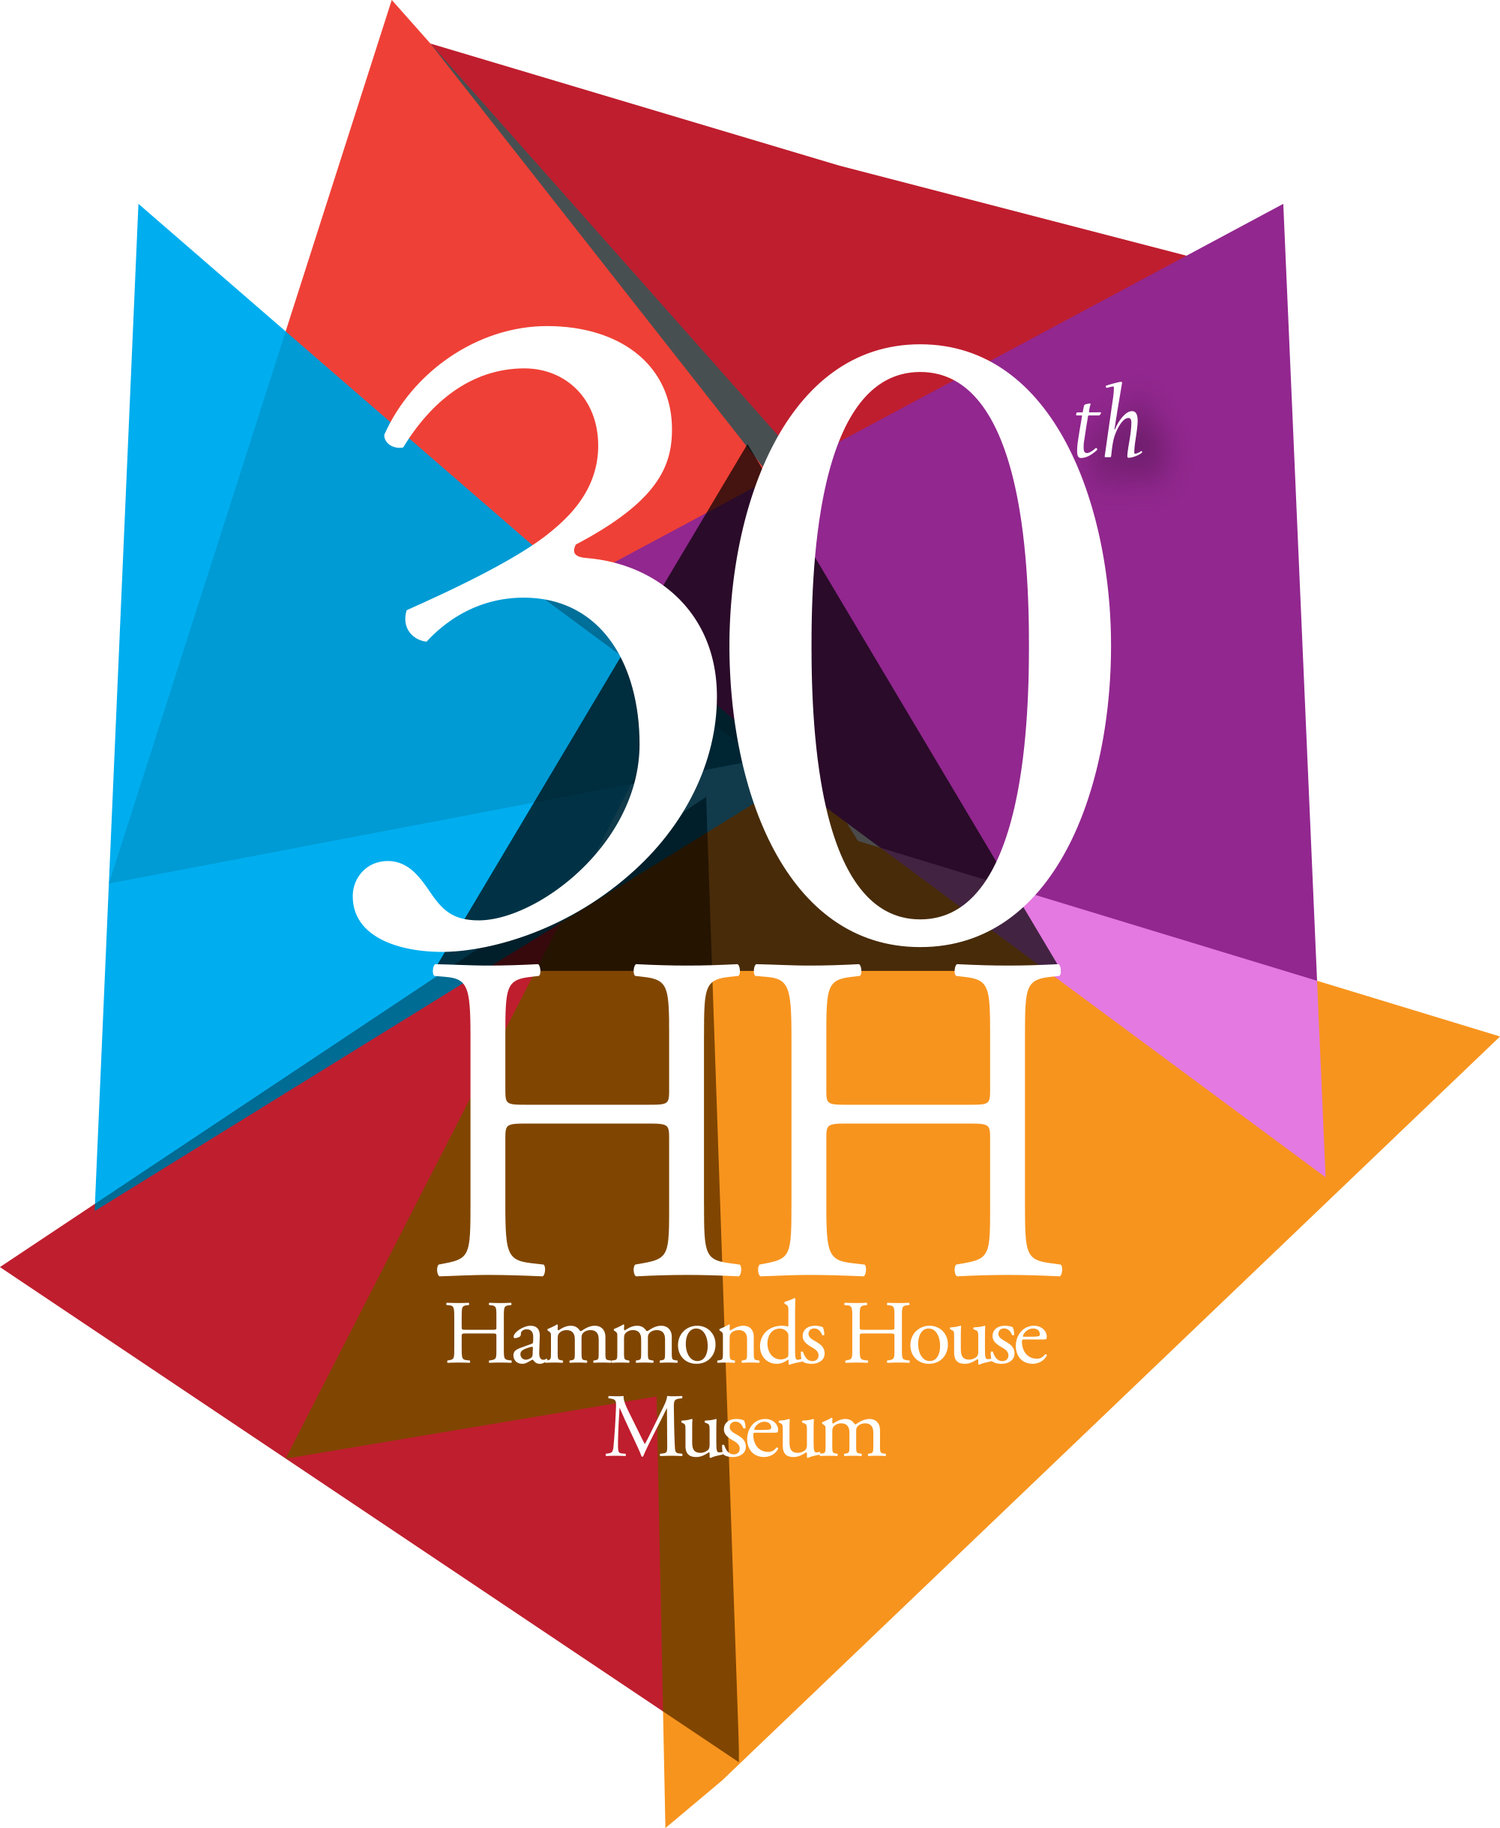 Hammonds House Museum